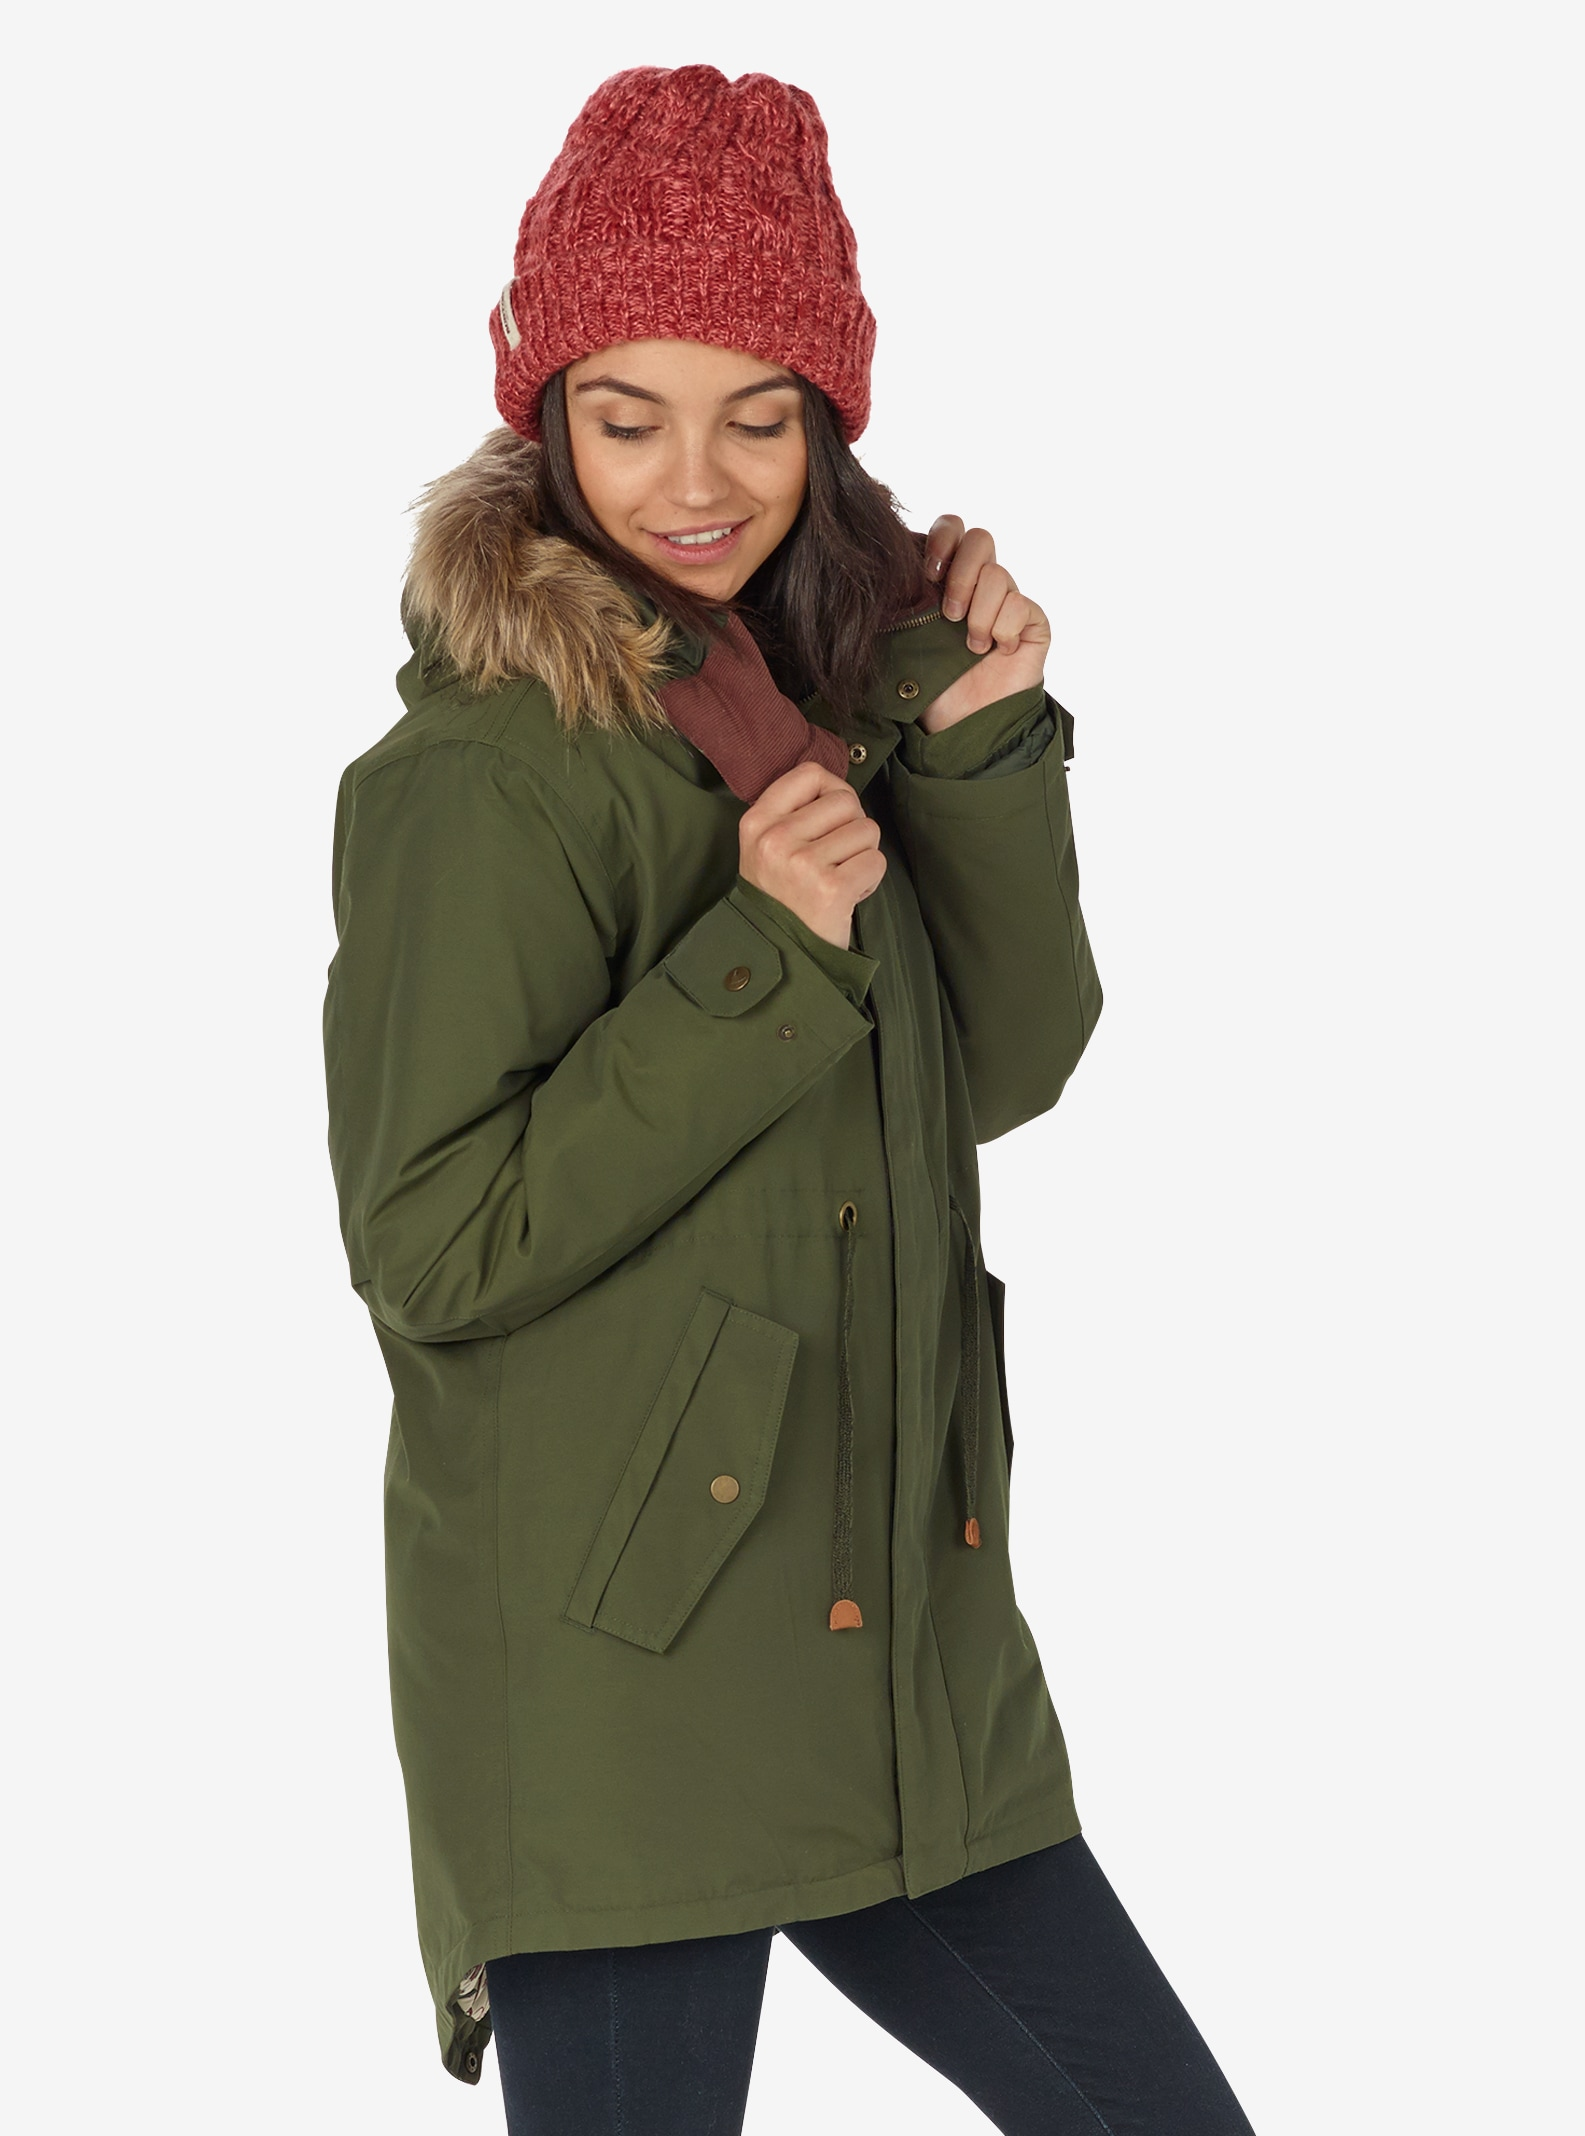 Women's Burton Saxton Parka Jacket shown in Forest Night